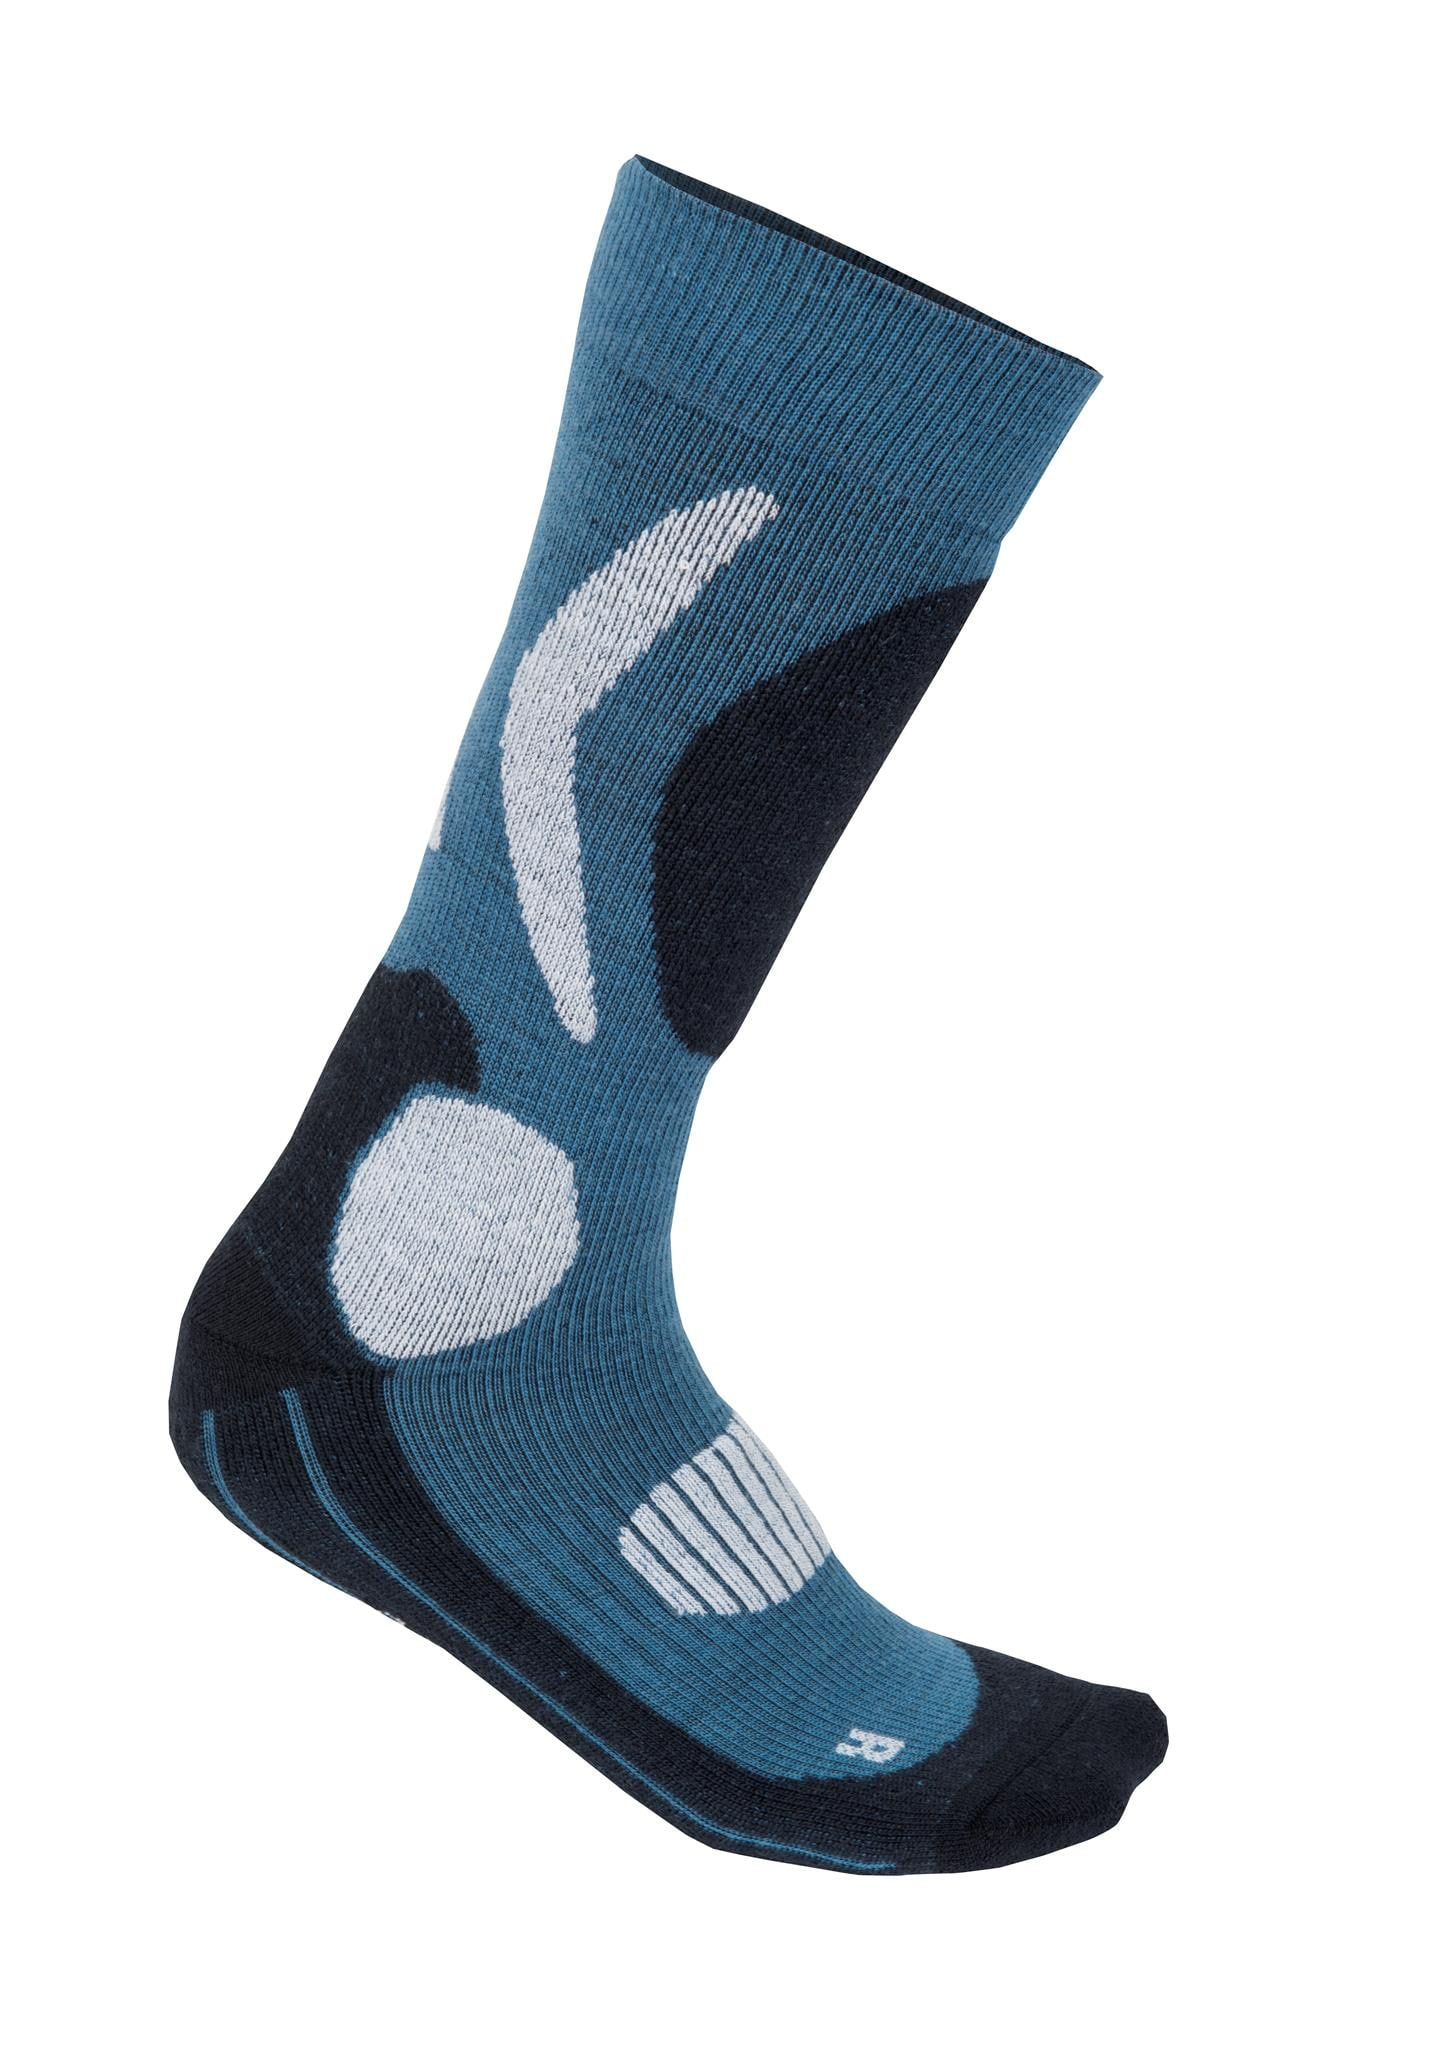 Aclima Cross Country Socks, 1 par